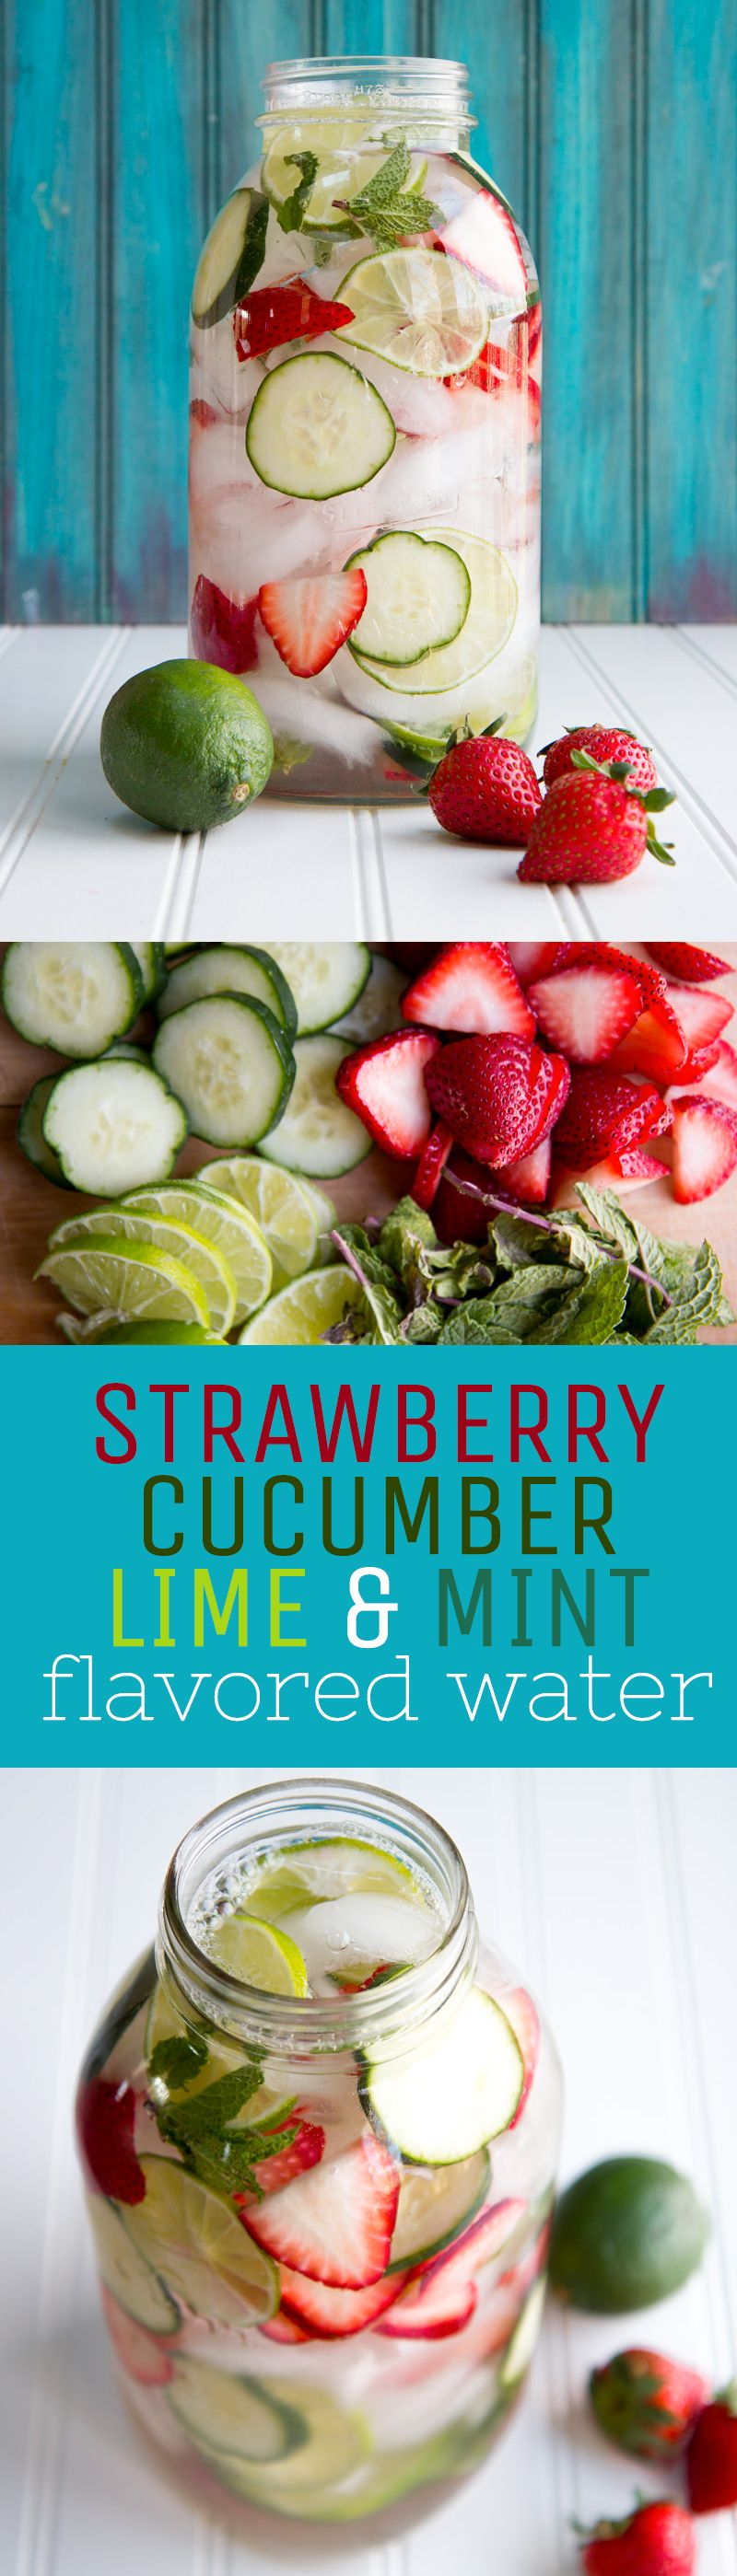 Strawberry, Lime, Cucumber and Mint Infused Water | Recipe | healthy ...